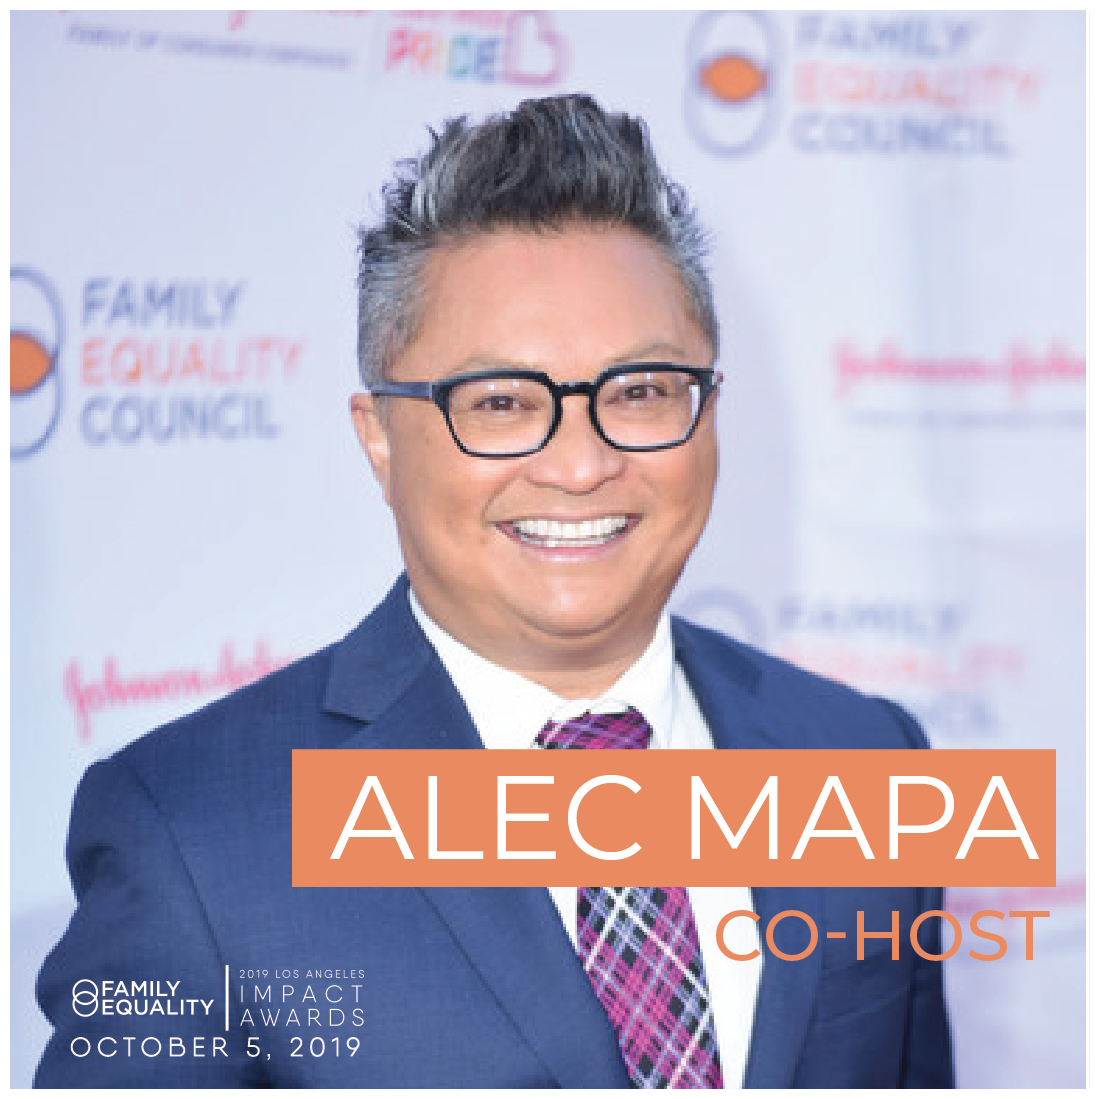 Sample caption: What can't this guy do? Can't wait to join my friend  @alecmapa  and  @familyequality  in celebrating all those who make a difference in the lives of #LGBTQ+ families and youth. #LAImpactAwards